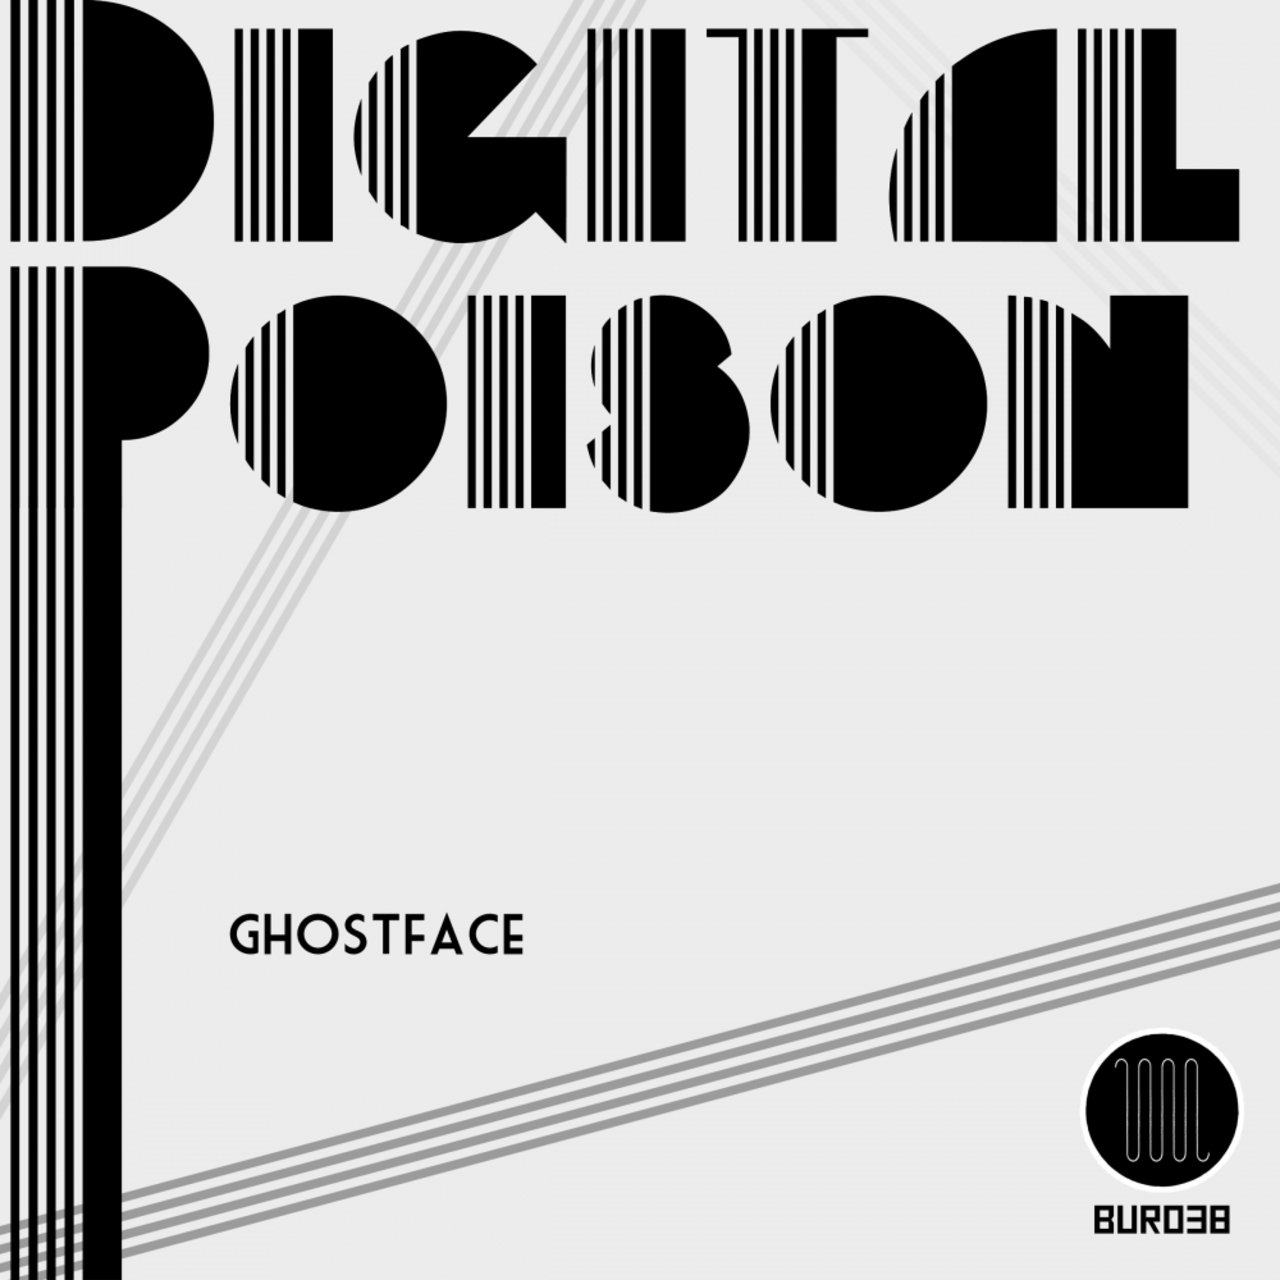 Digital Poison